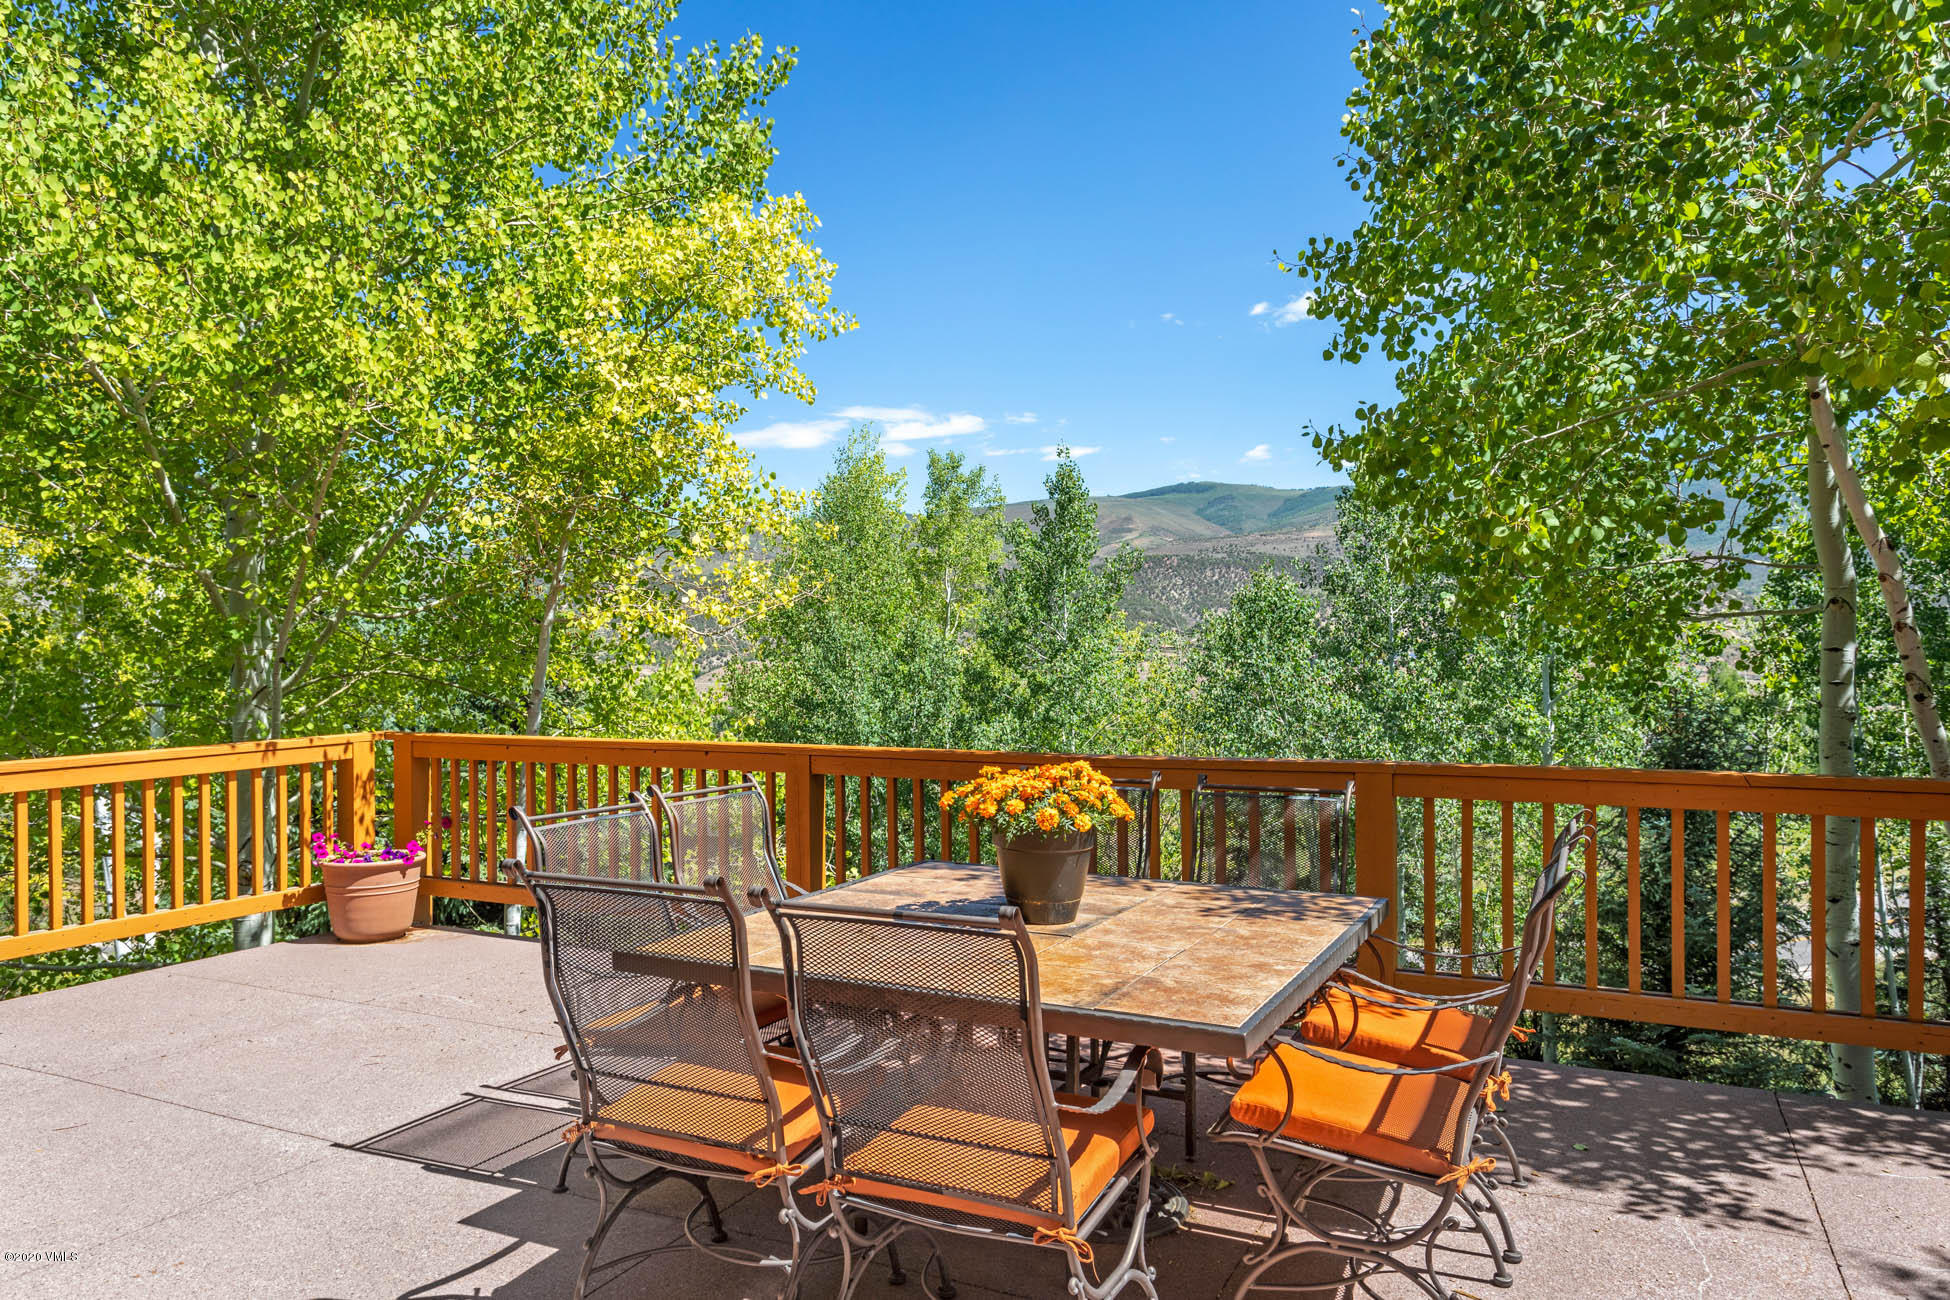 The home you truly have been waiting for! A perfect location with forever views in Upper Homestead. Live an outdoor lifestyle - work from home or entertain on your 2 expansive decks surrounded by numerous mature Aspen groves. Wake up to sunshine from every angle & access the Homestead Open Space for your morning hike. Mountain views are endless from widespread windows in the kitchen, dining, reading nook and living area. The great room leads to an open, remodeled kitchen featuring granite counter tops, stainless appliances and new floors.  Imagine the potential with a 2 bedroom/1 bathroom lockoff in the lower level - excellent income or incorporate this with the entire home creating additional bedrooms, living, den, workout, office or playroom area. Add a swing set, playhouse or outdoor furniture to the large, private backyard backing to open space.  2 Car Garage plus additional 4 parking spaces.